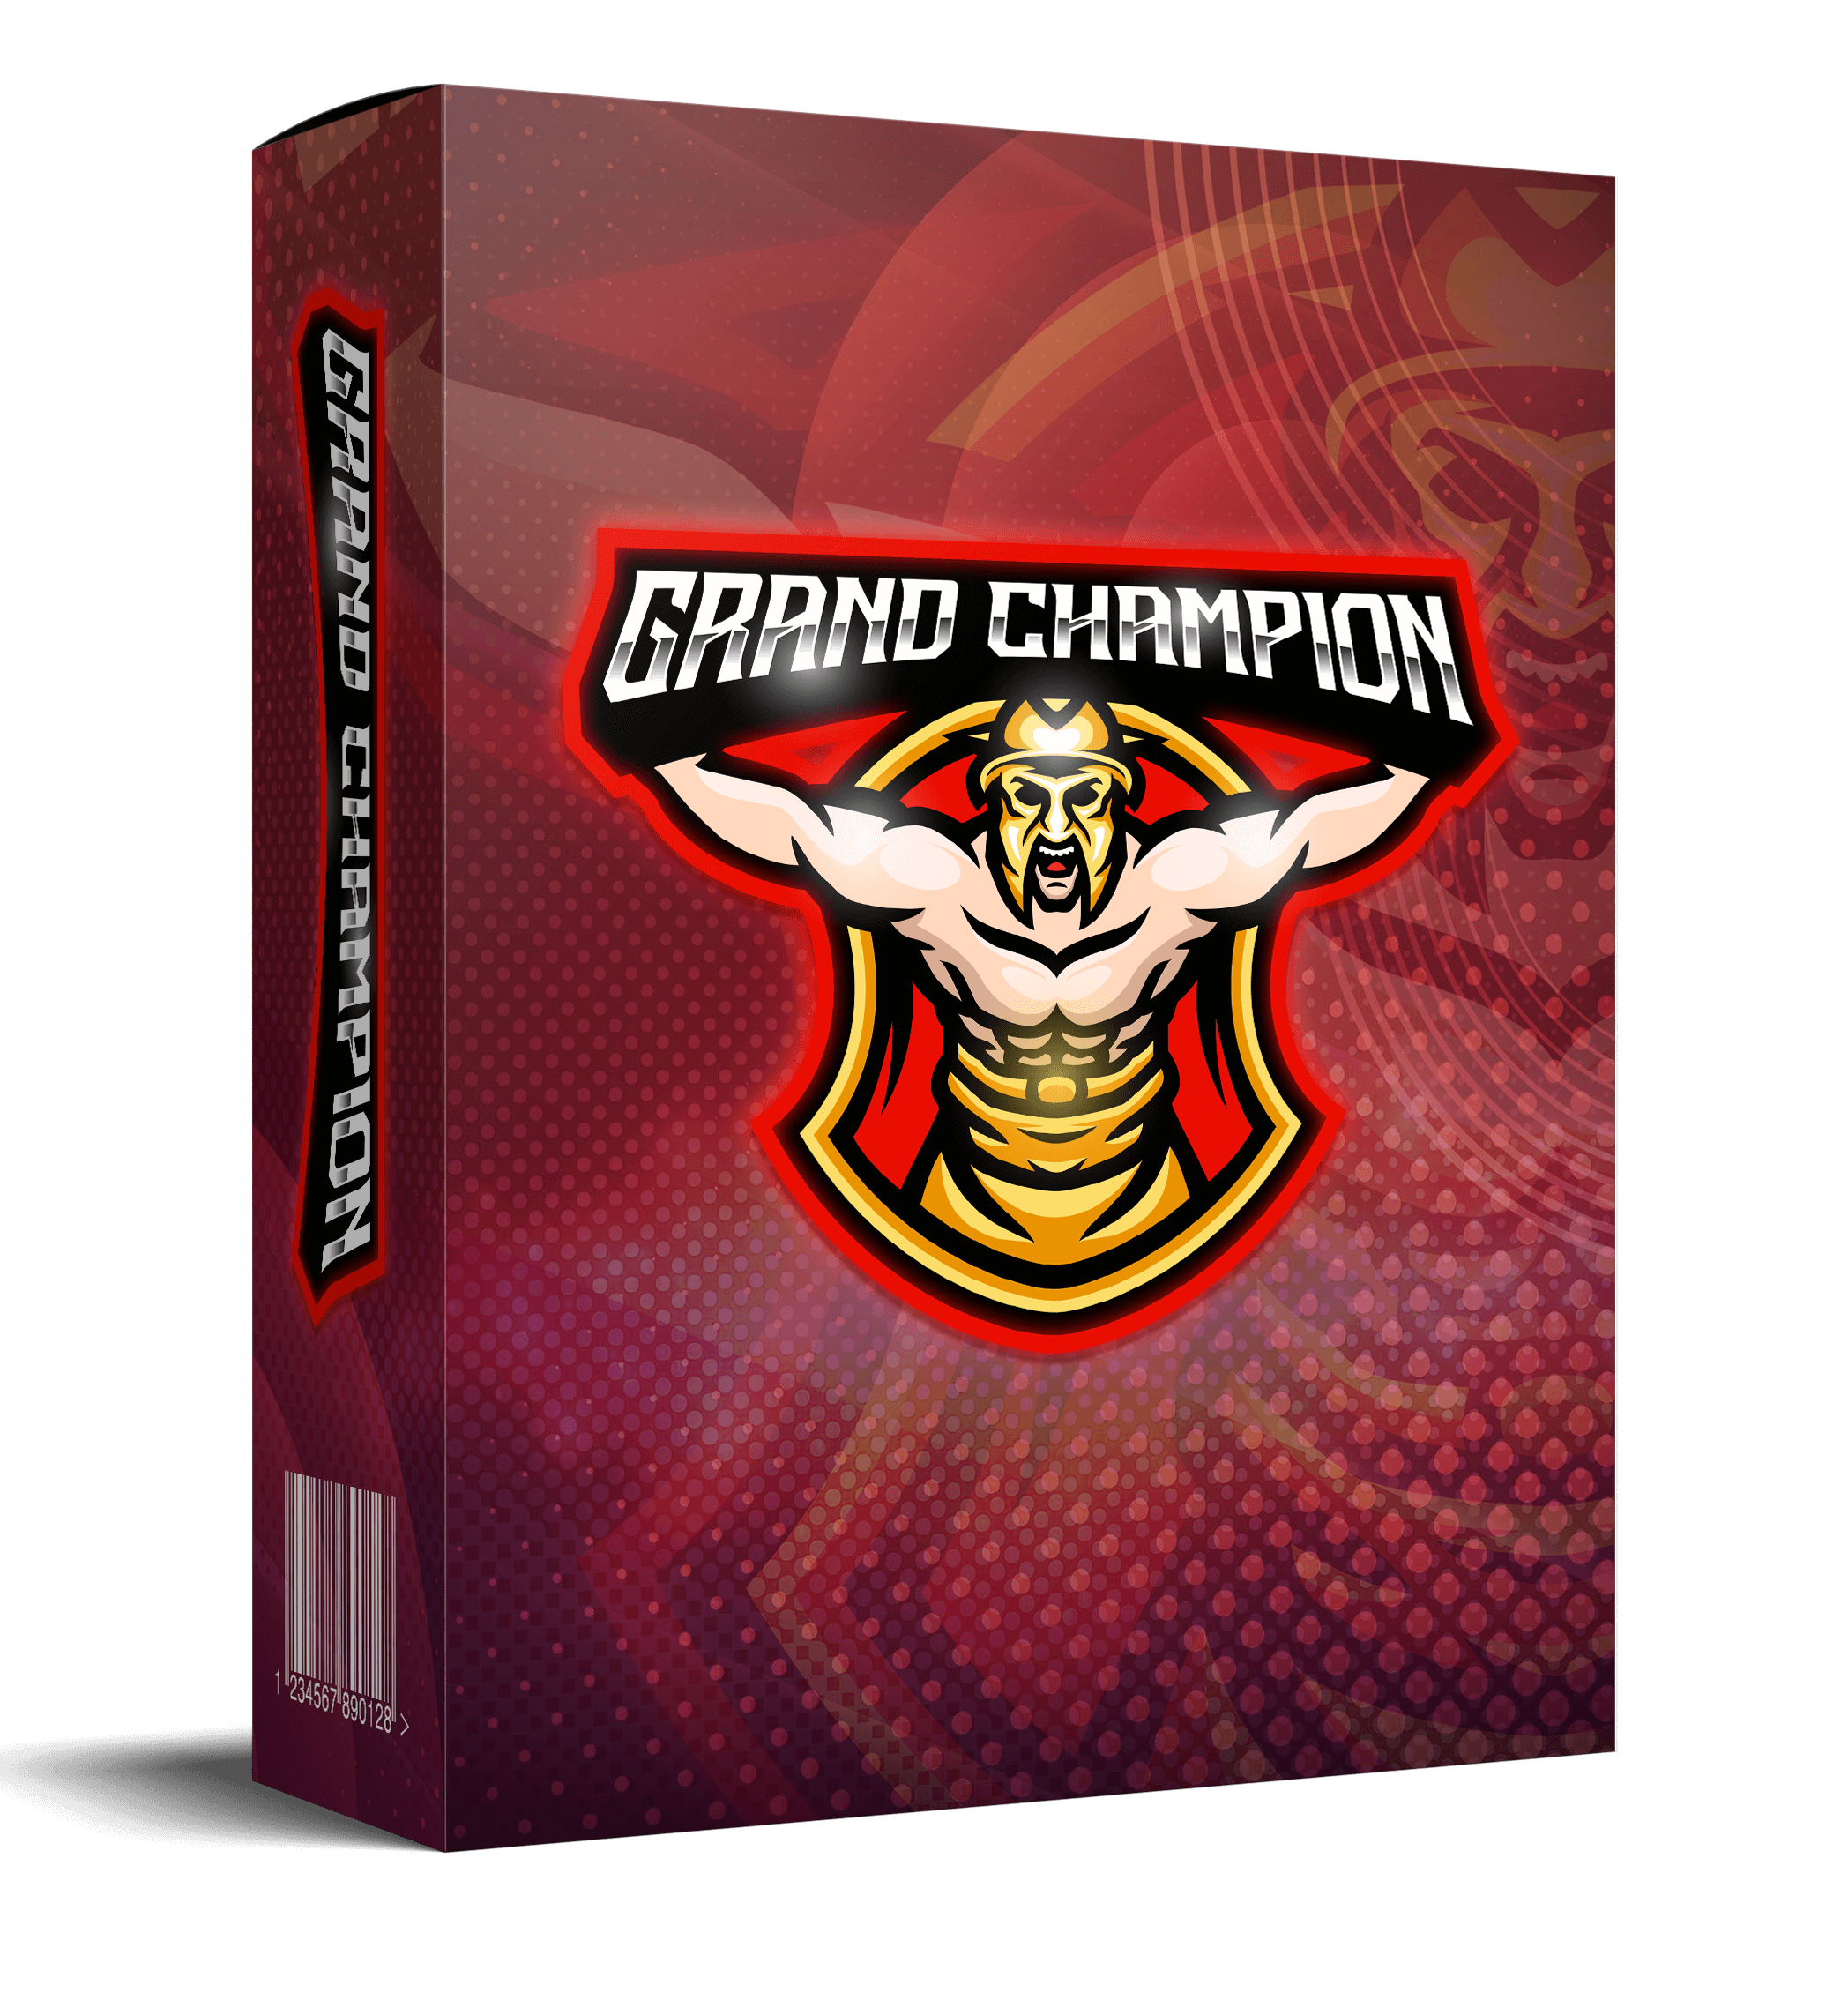 grand champion review